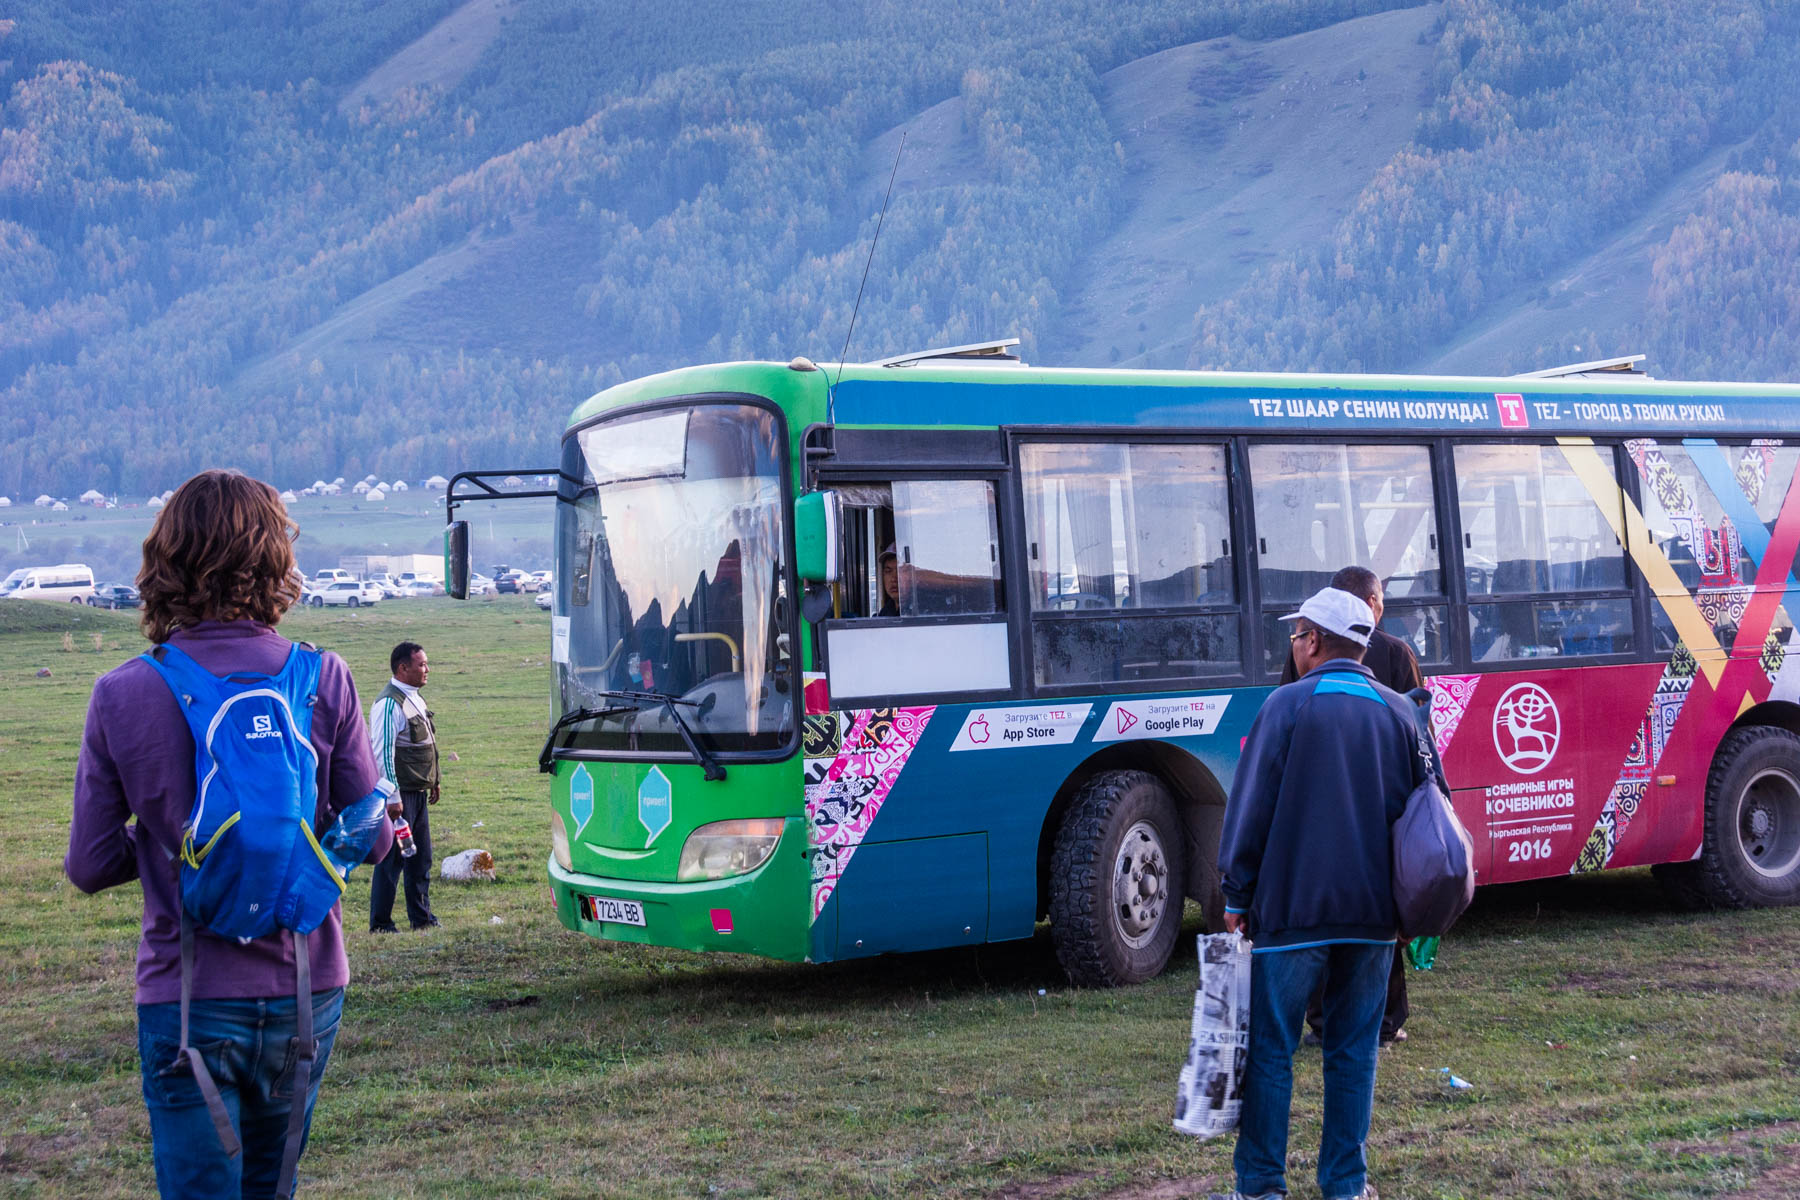 The free shuttle at the 2016 World Nomad Games in Kyrgyzstan